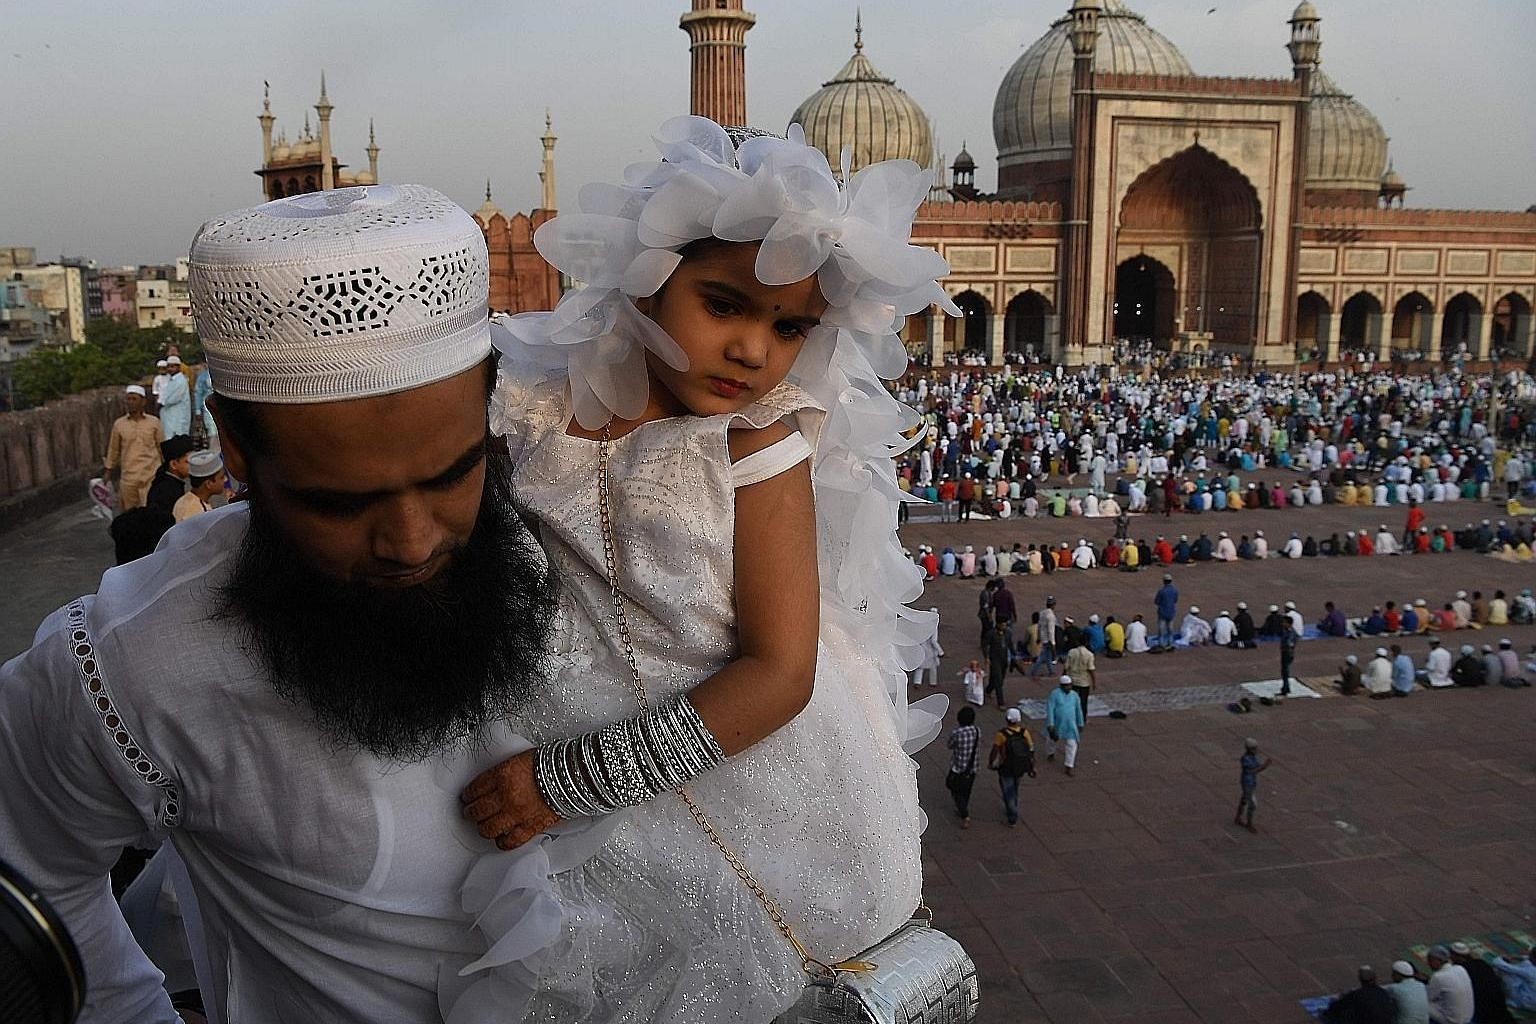 An Indian Muslim and his daughter at New Delhi's Jama Masjid mosque during Eid al-Fitr on Wednesday. Official data shows that India's Muslims fare worse than other religious communities in the country, and their continued marginalisation threatens to